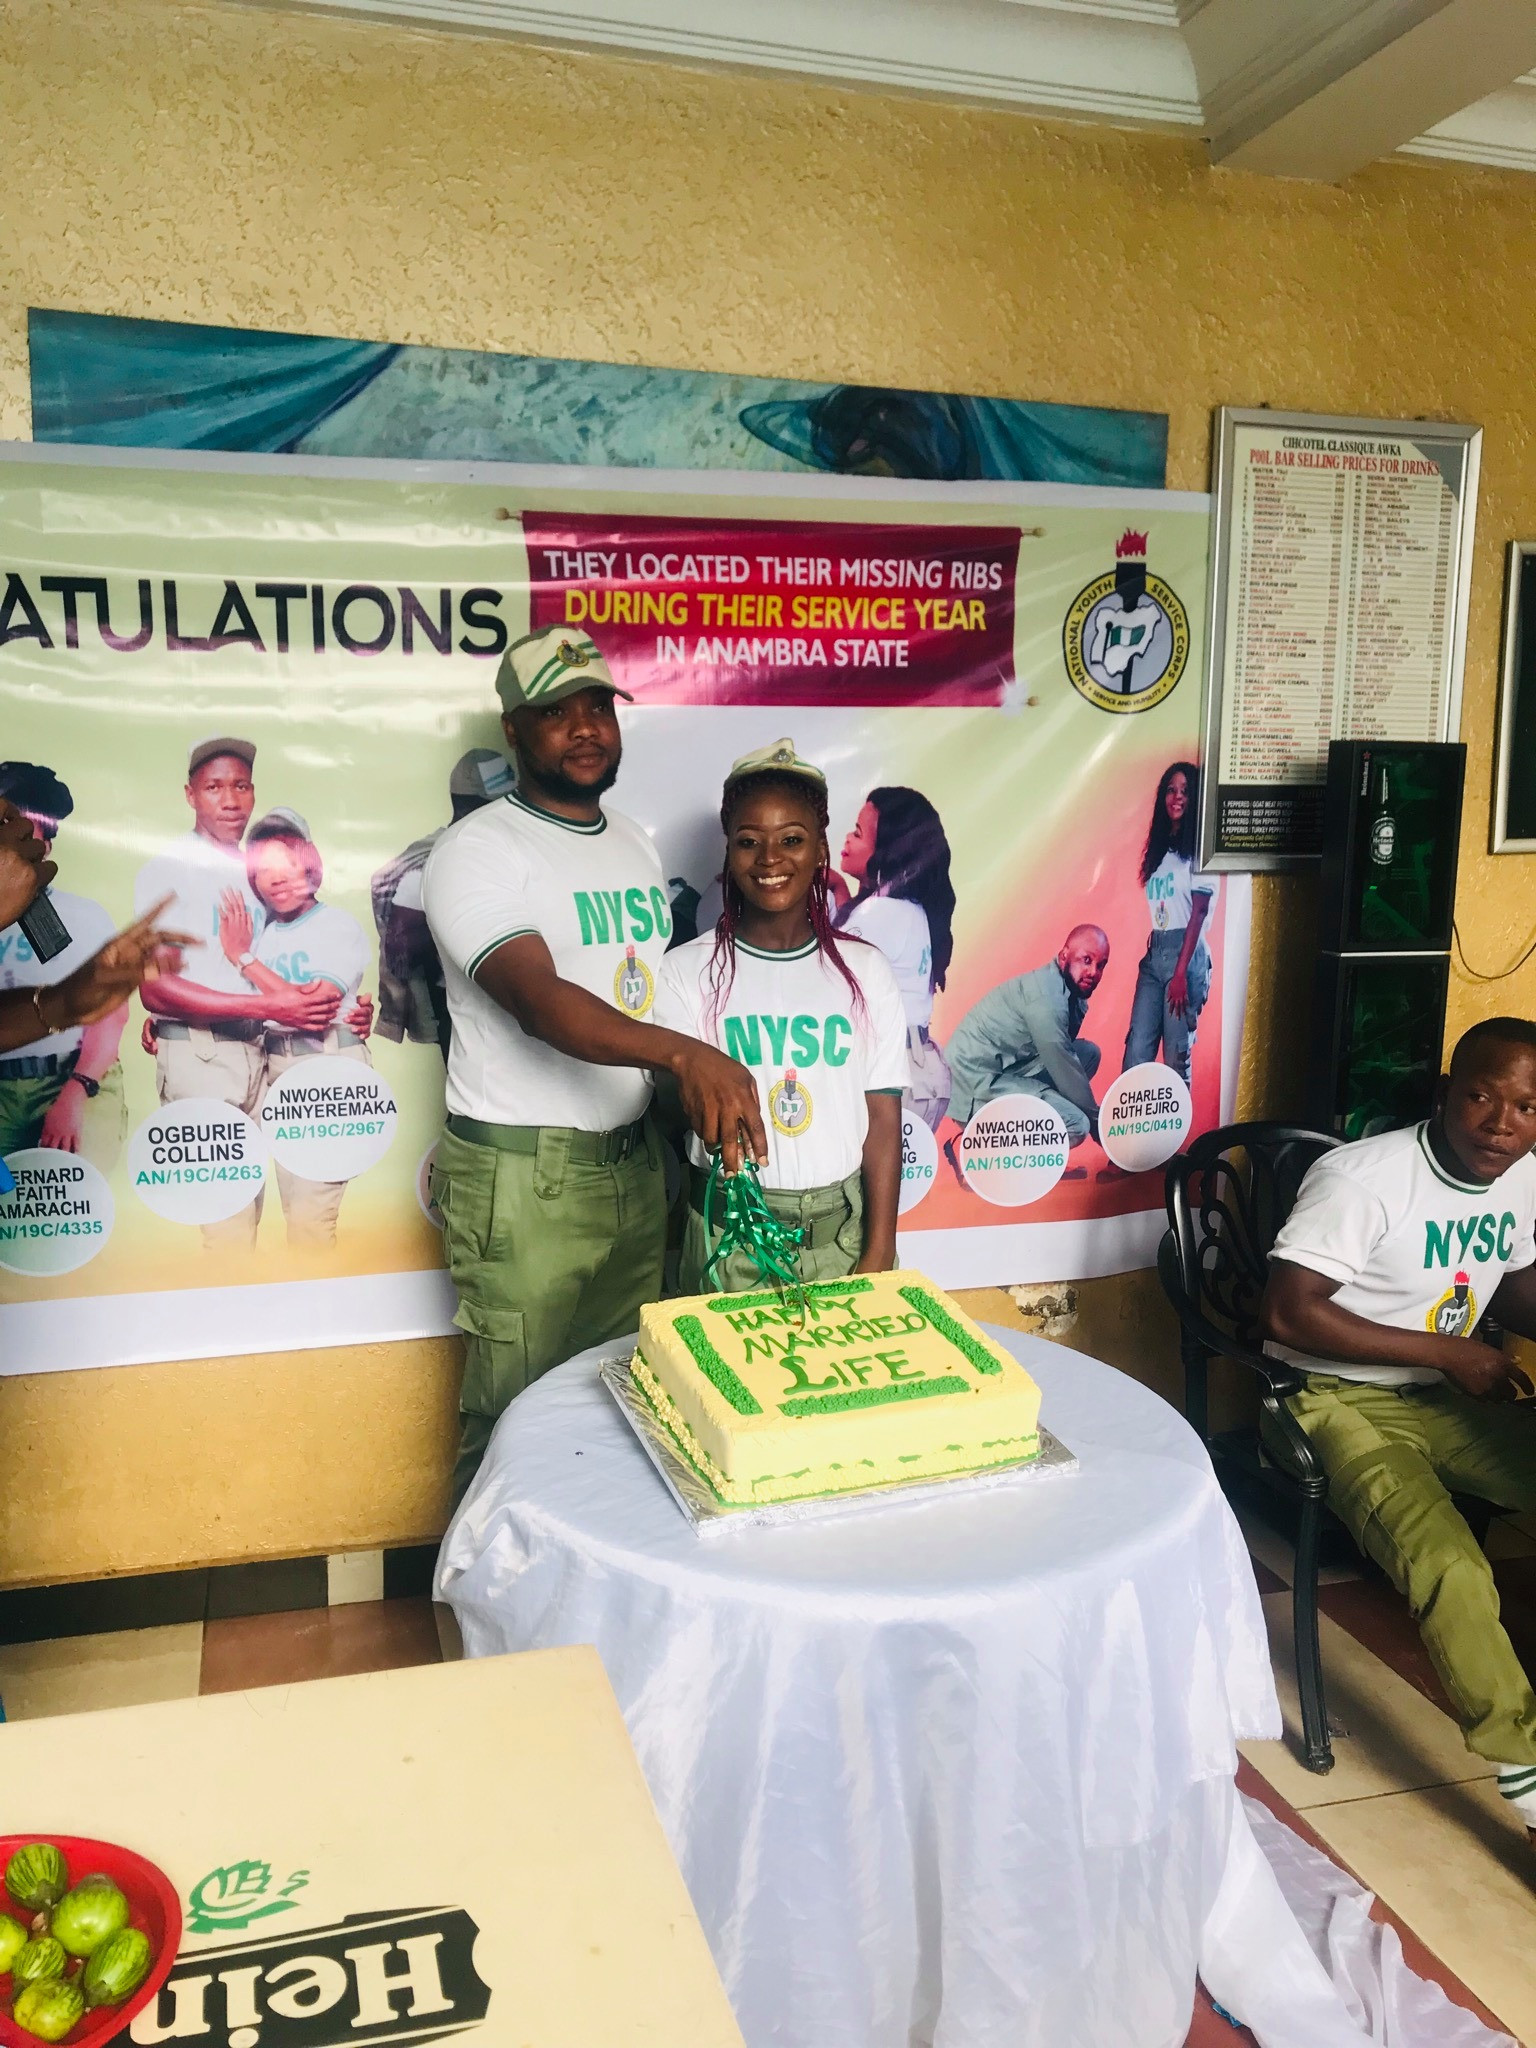 corps members got married in Anambra